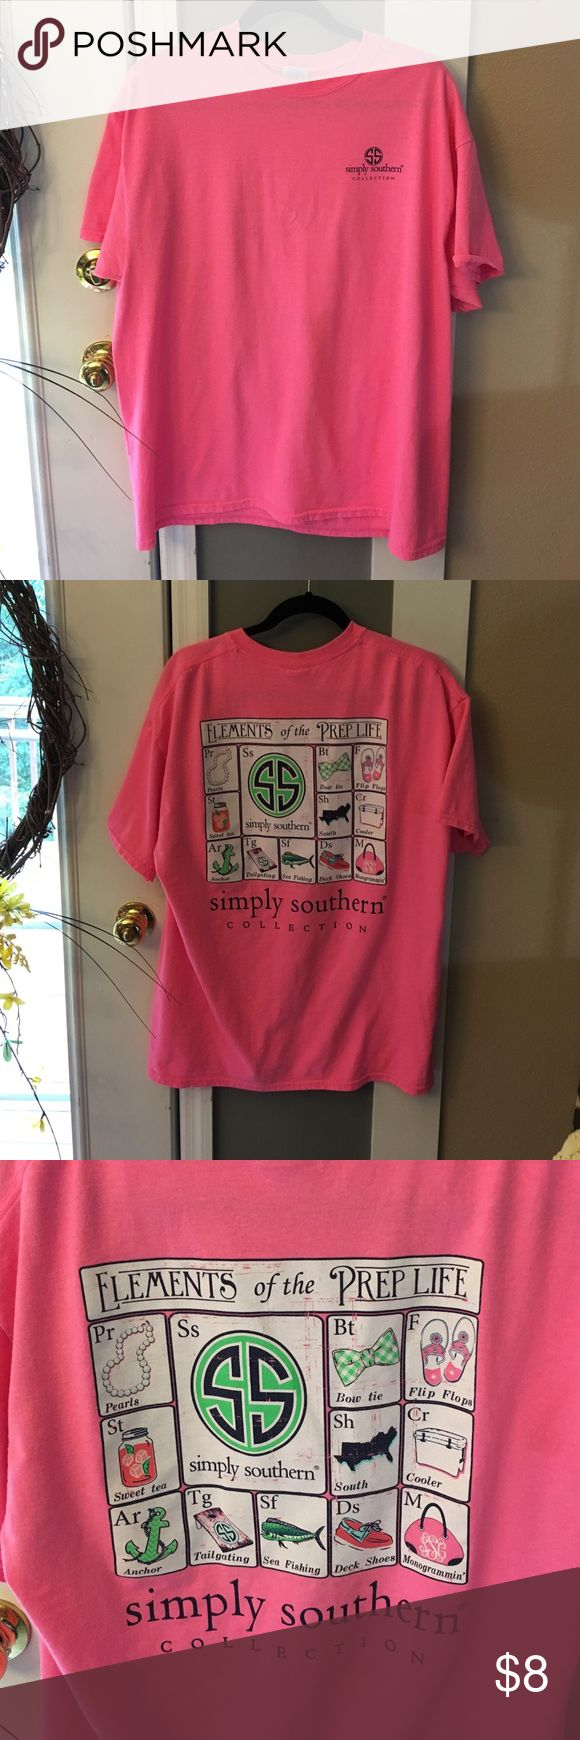 Simply Southern Pink Prep Life Tee Great condition, cute pink with prep life design on back. Material is cotton and polyester Simply Southern Tops Tees - Short Sleeve